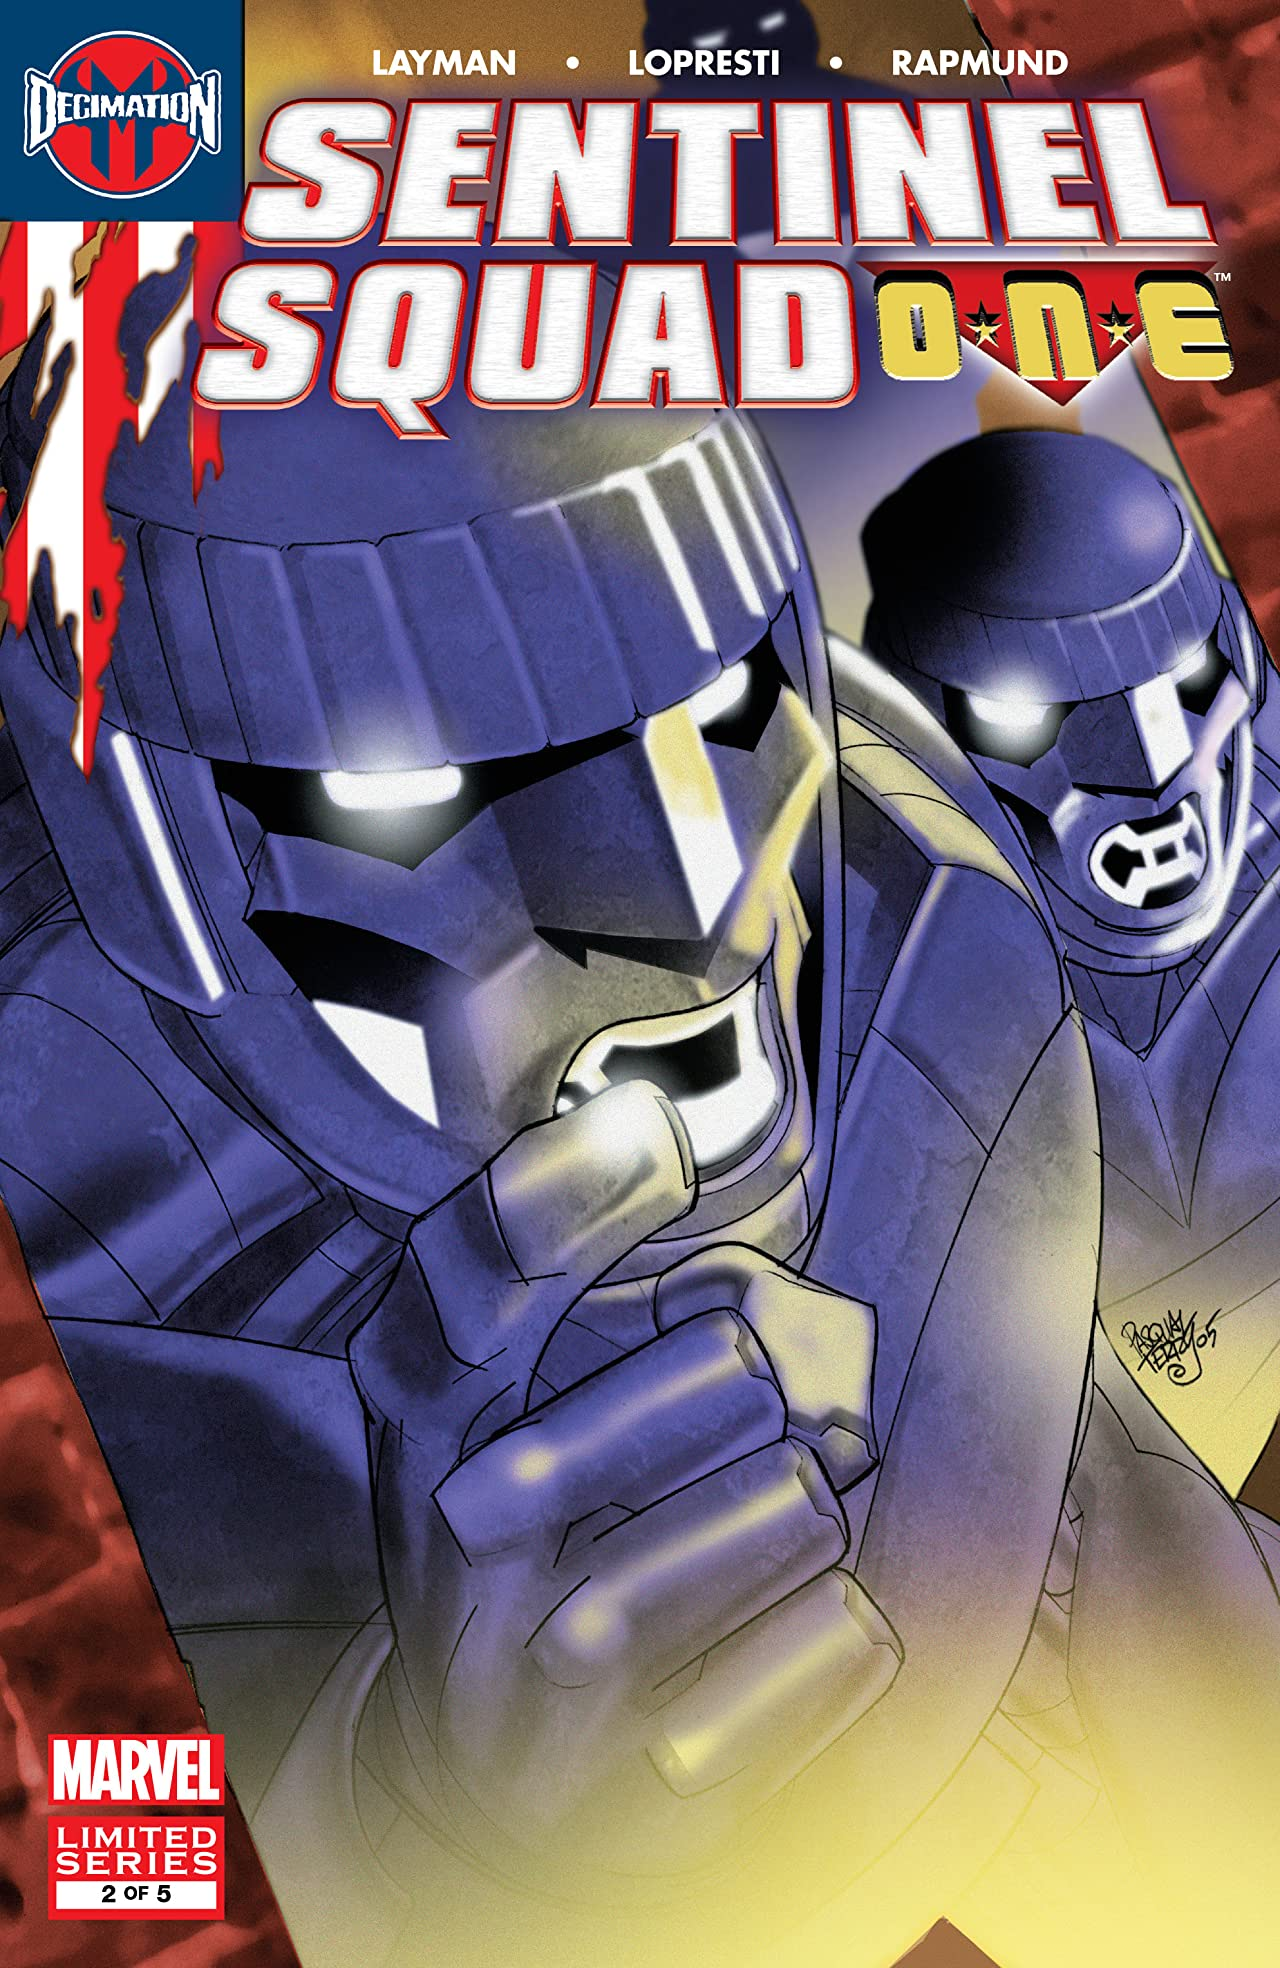 Sentinel Squad One (2006) #2 (of 5)